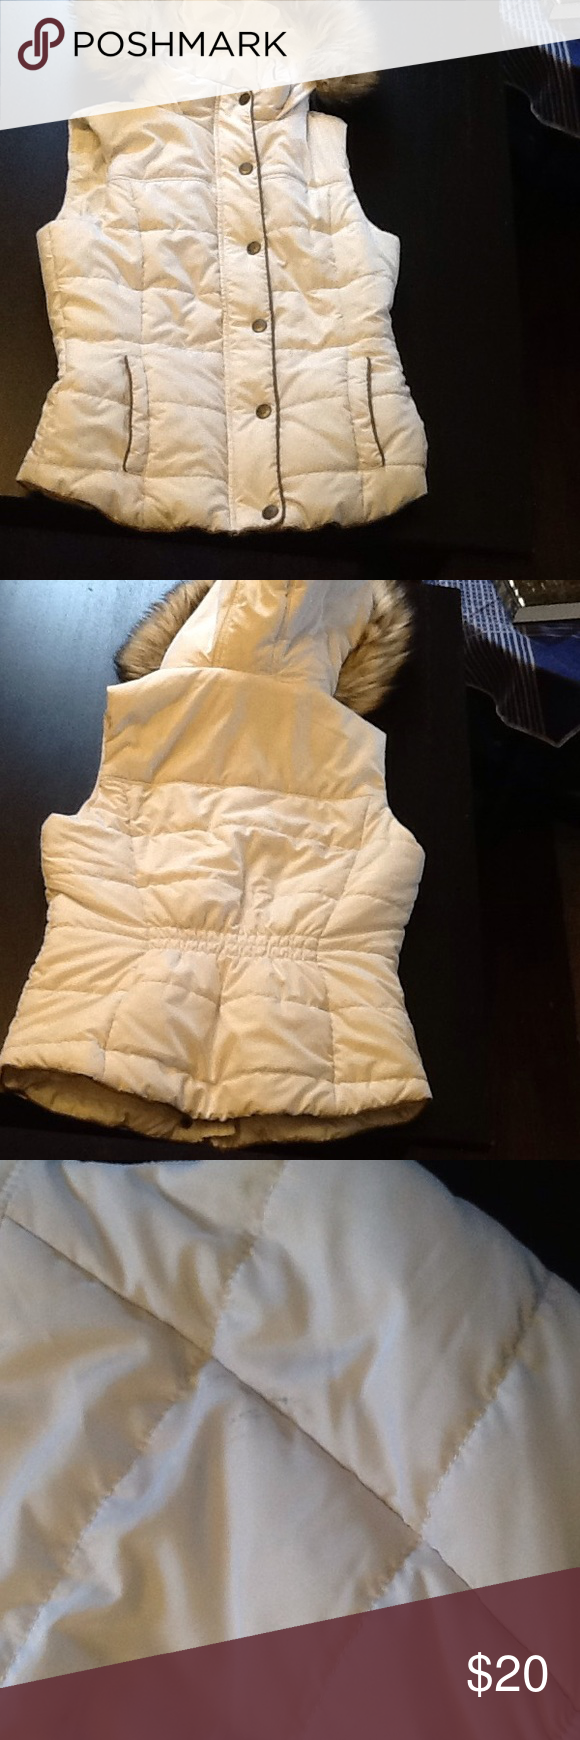 Aeropostale Prince & Fox Hooded Vest w/ faux fur Great Condition! Small stain on the back, as shown in picture, great quality material. Aeropostale Jackets & Coats Vests